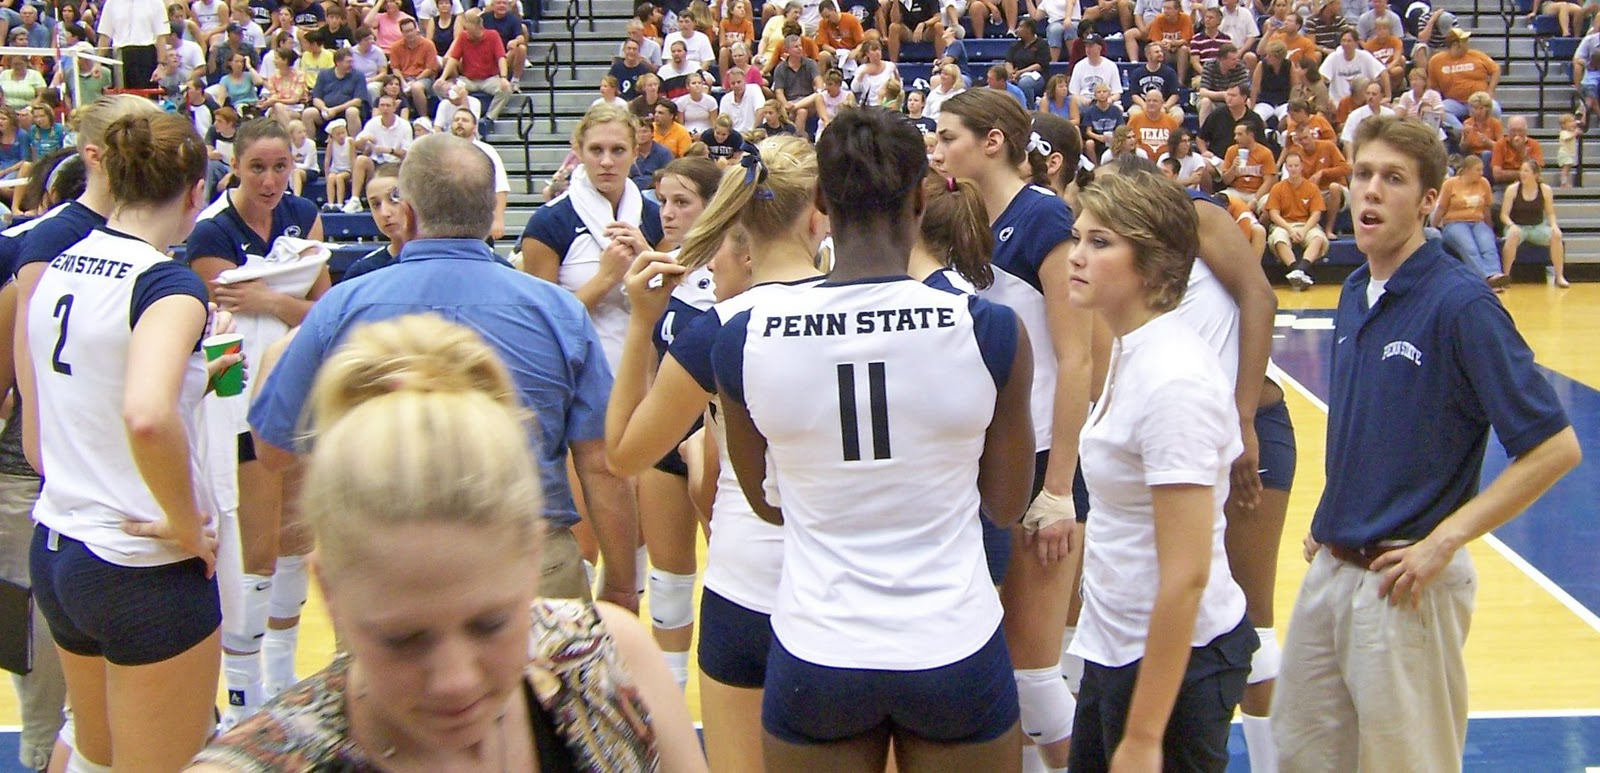 College Volleyball Girls Nude